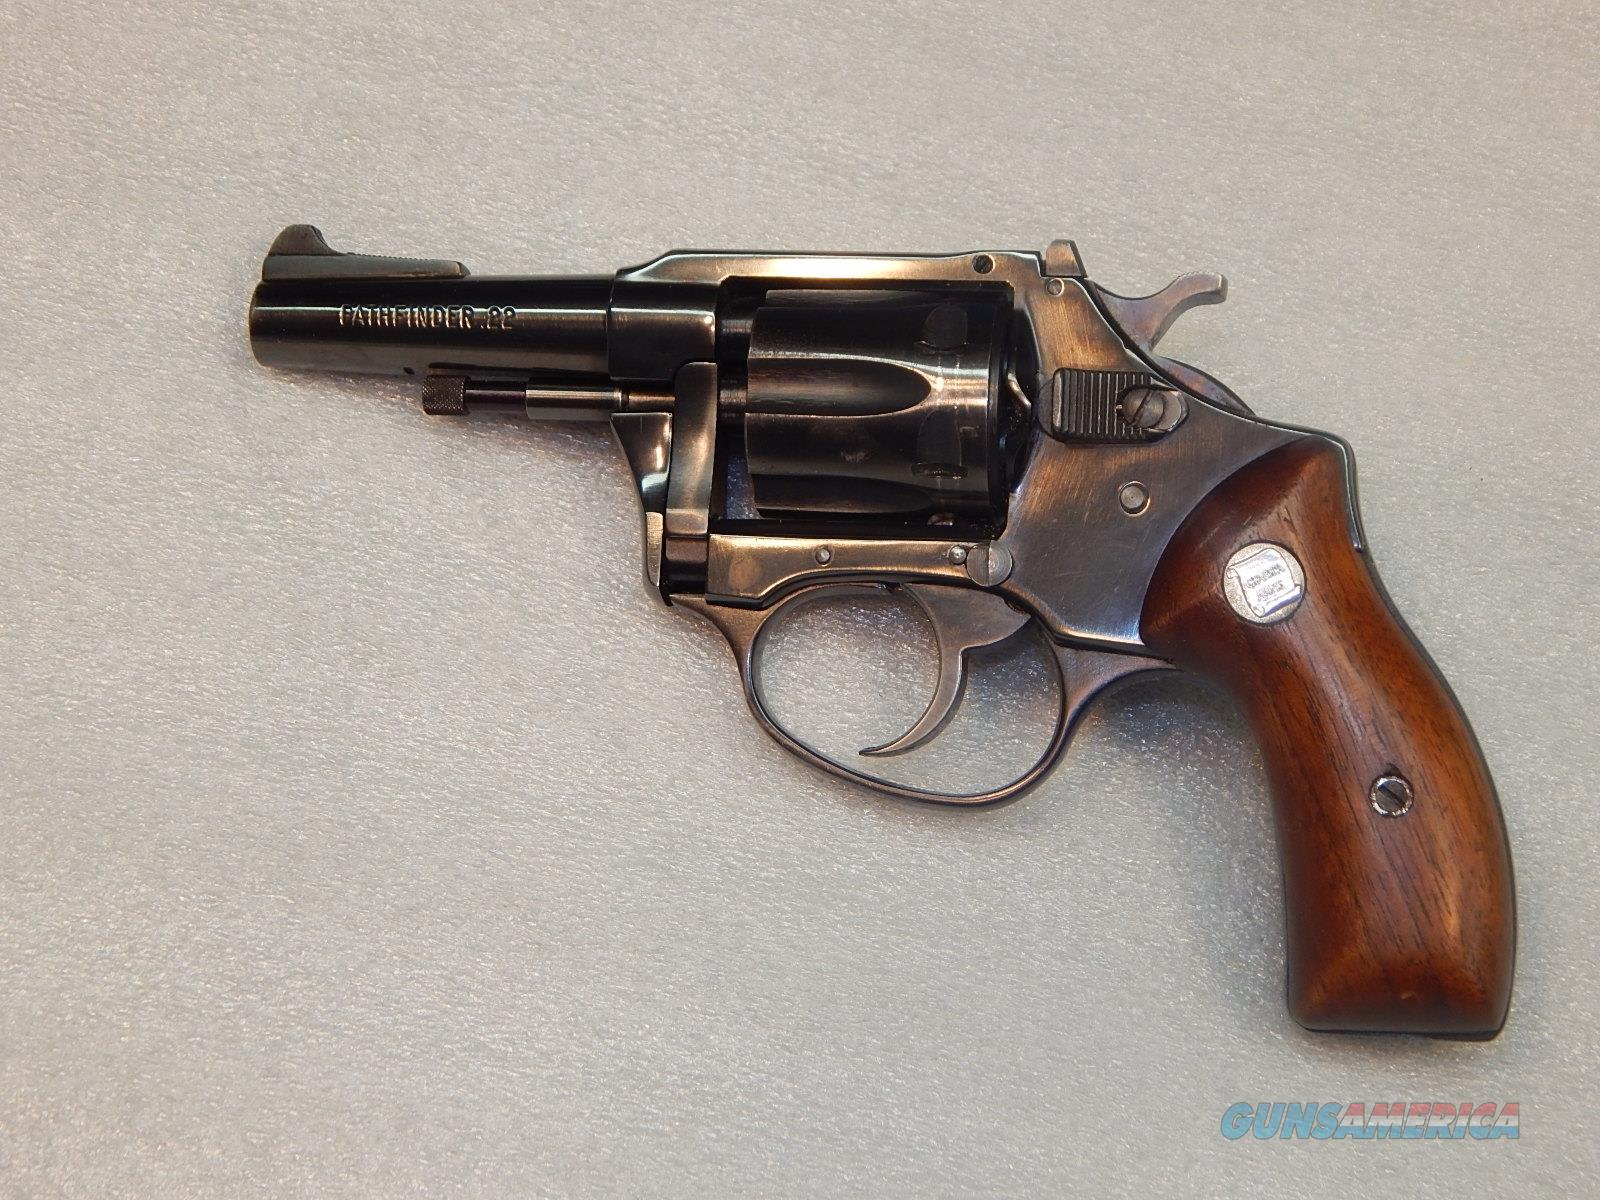 Classic Charter Arms Pathfinder .22LR 1st Generation  Guns > Pistols > Charter Arms Revolvers